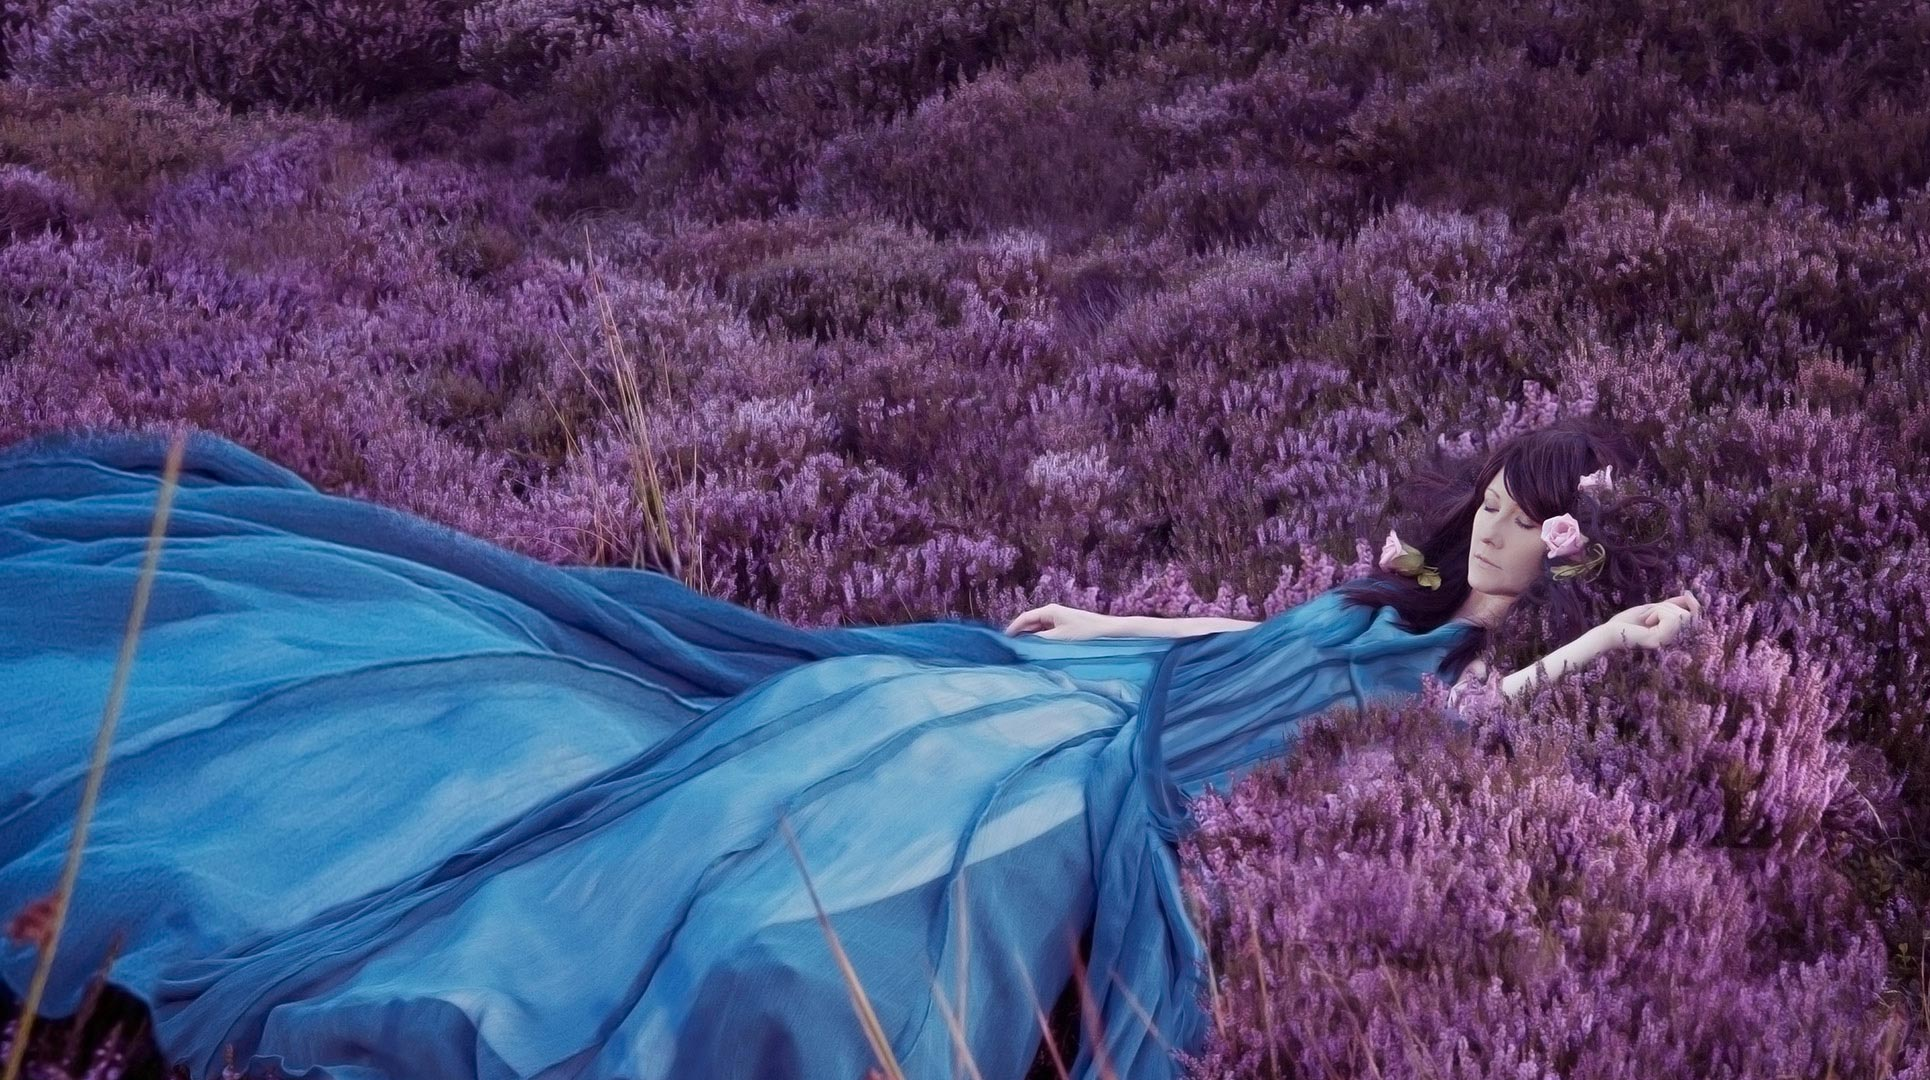 Nicola_Taylor_Art_Photography_Listen_to_the_Colour_of_Your_Dreams_1